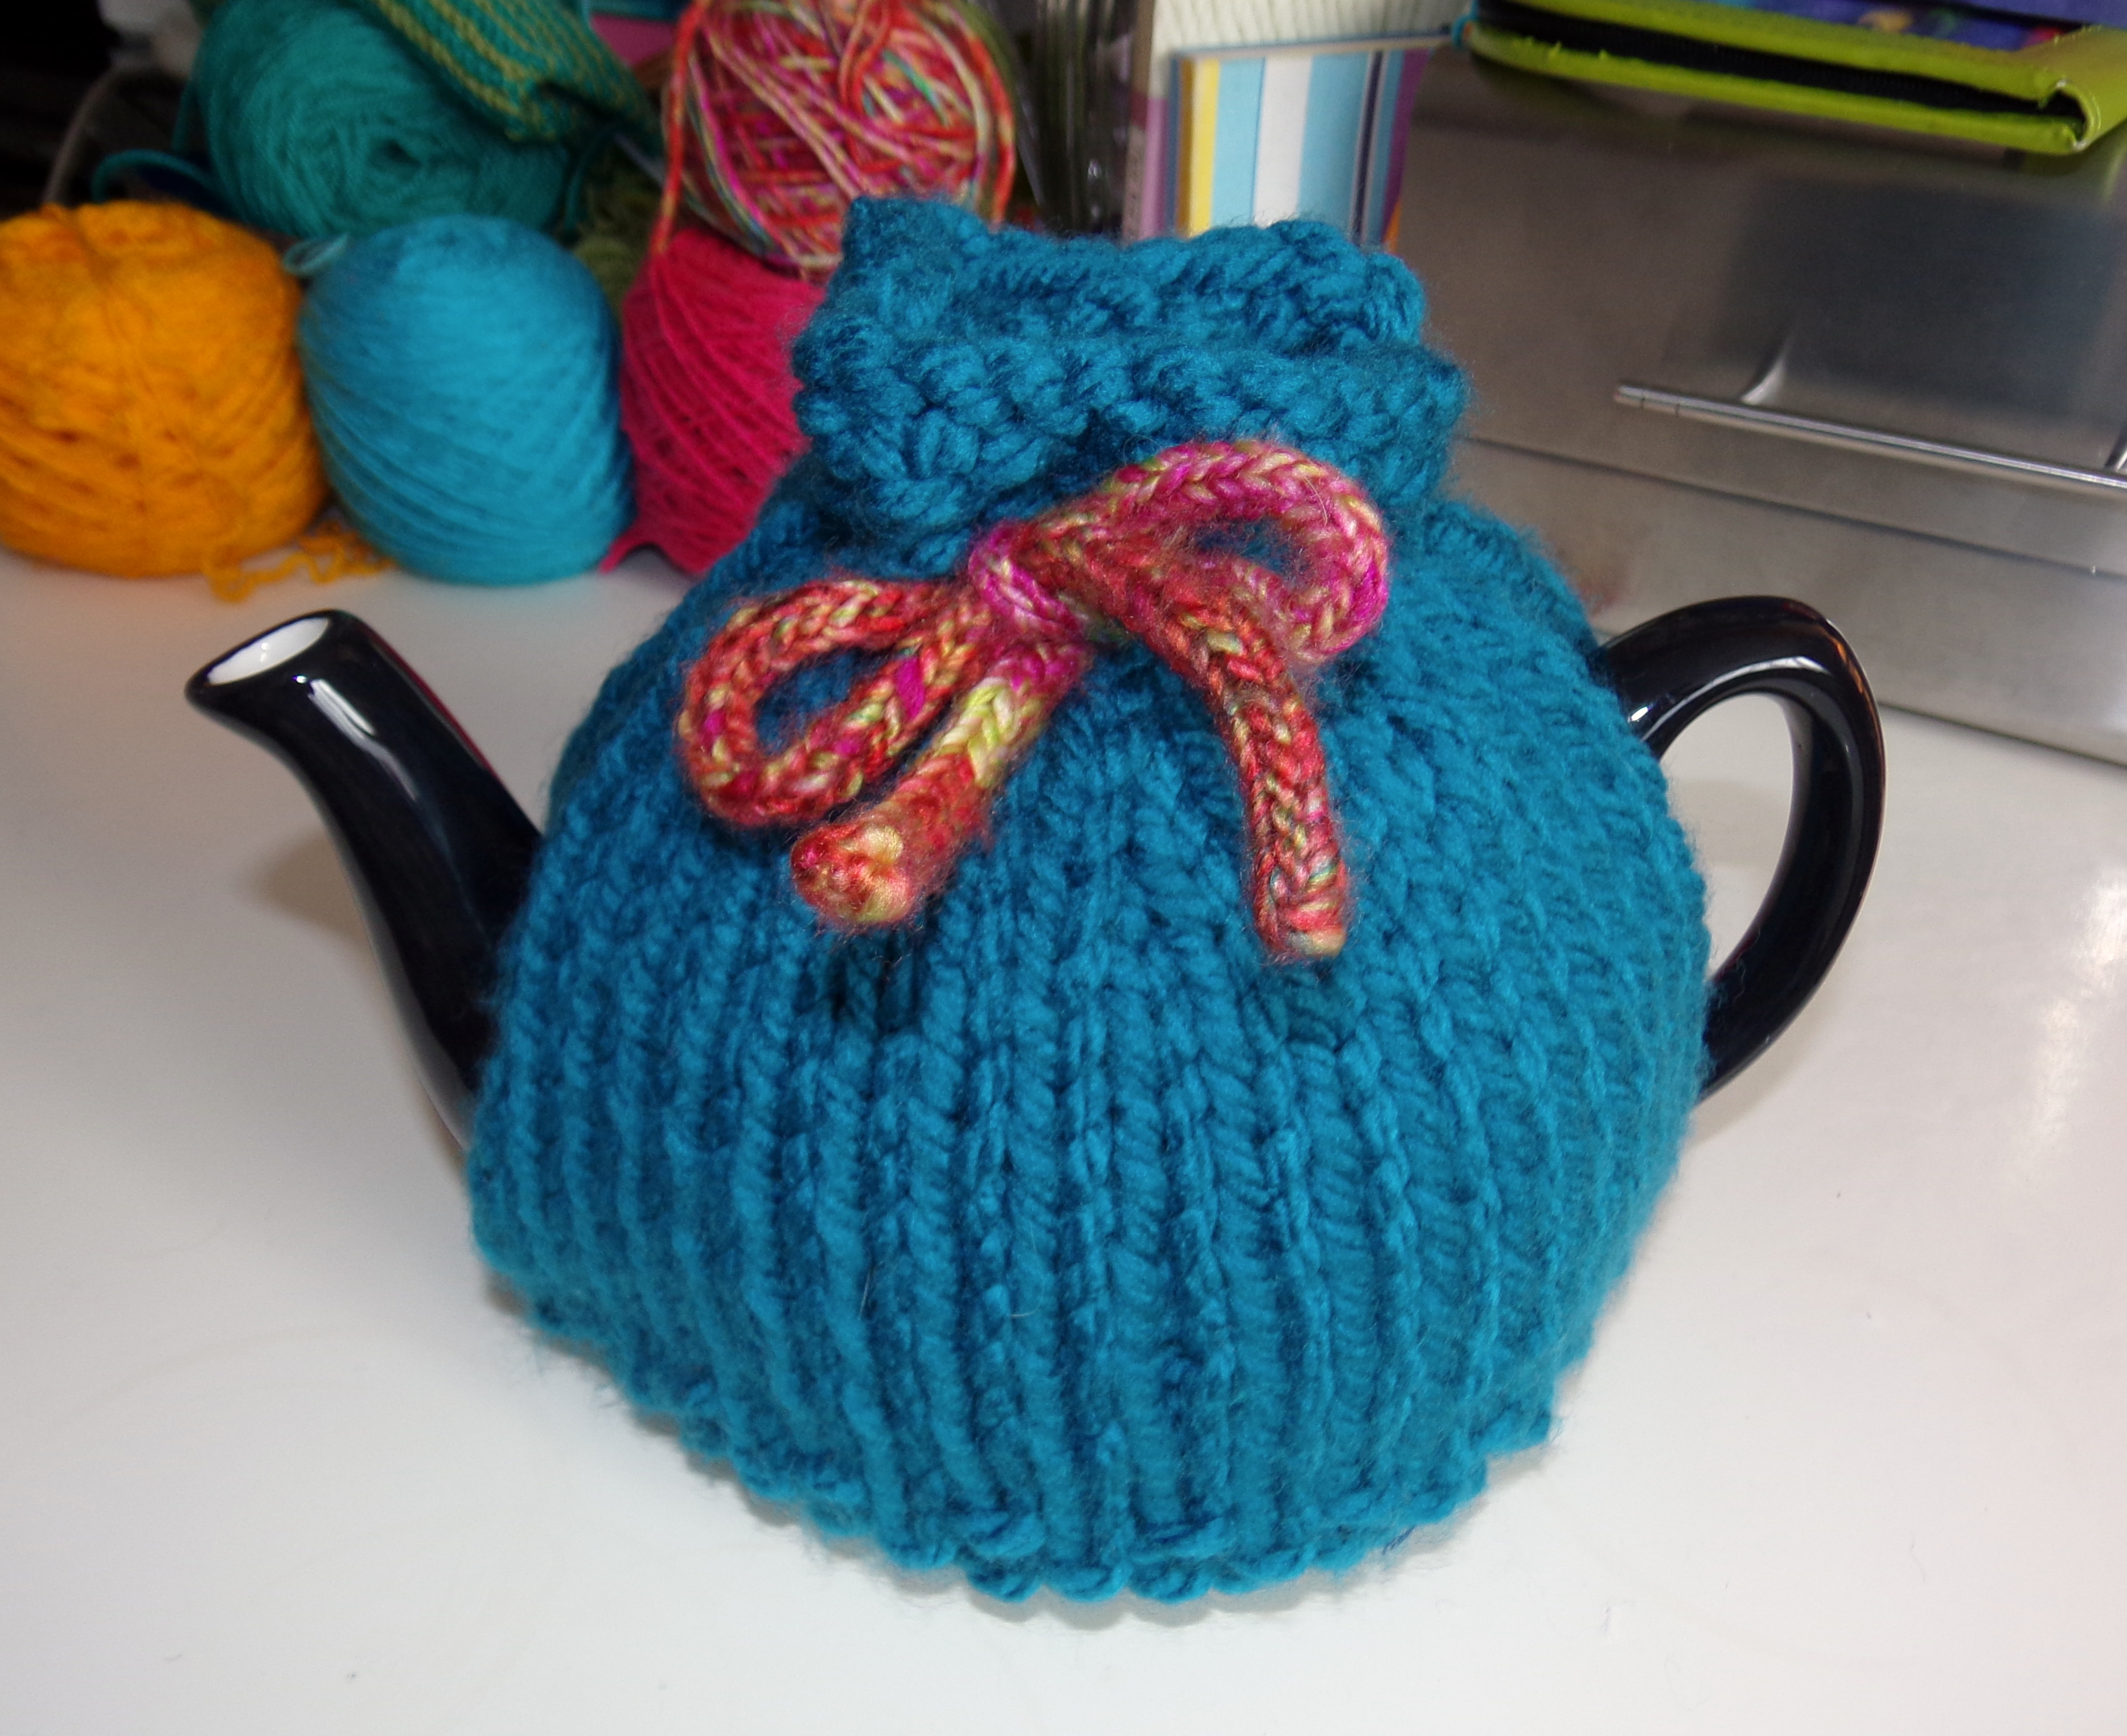 Tea Cosy Patterns To Knit Three Free Tea Cosy Patterns Reviewed Or Why Tea Pots Are Better